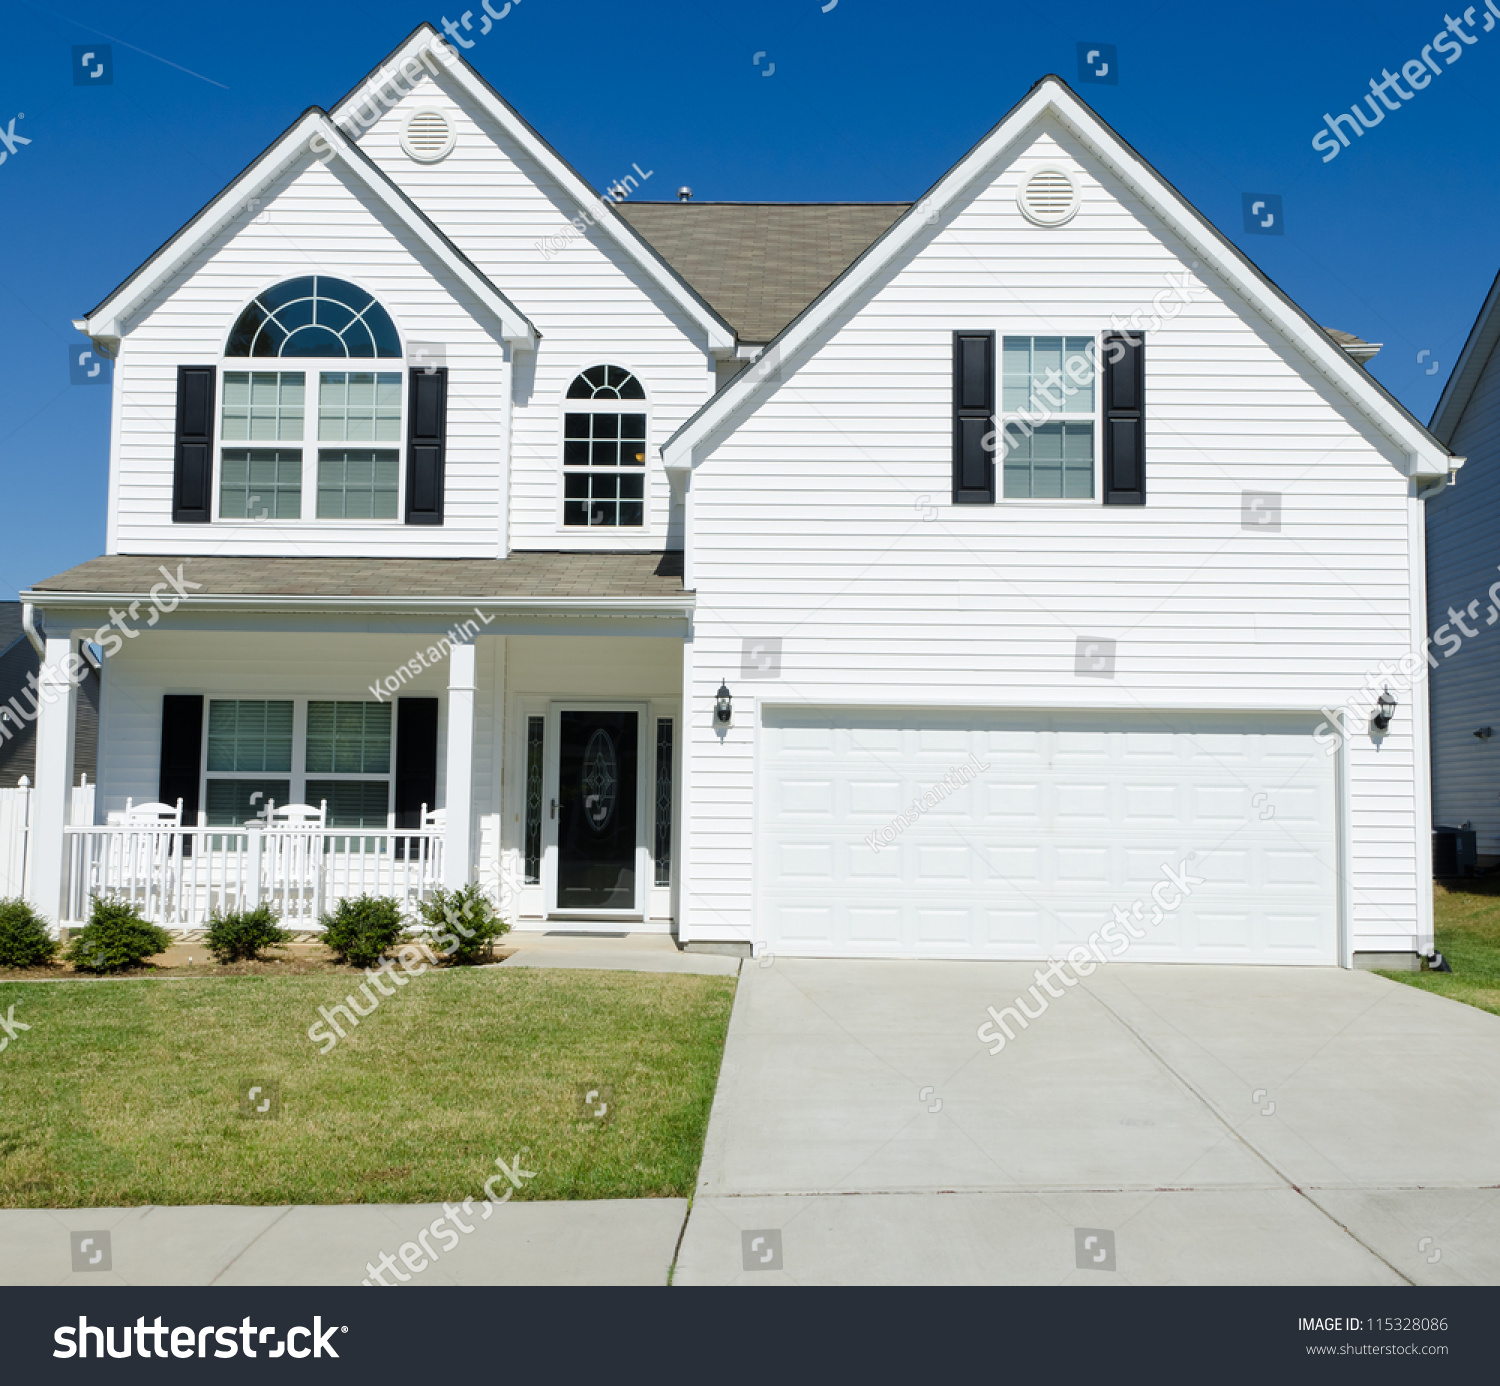 Pictures Of Houses Sided With Vinyl Siding Tiffany Teen Free Prono